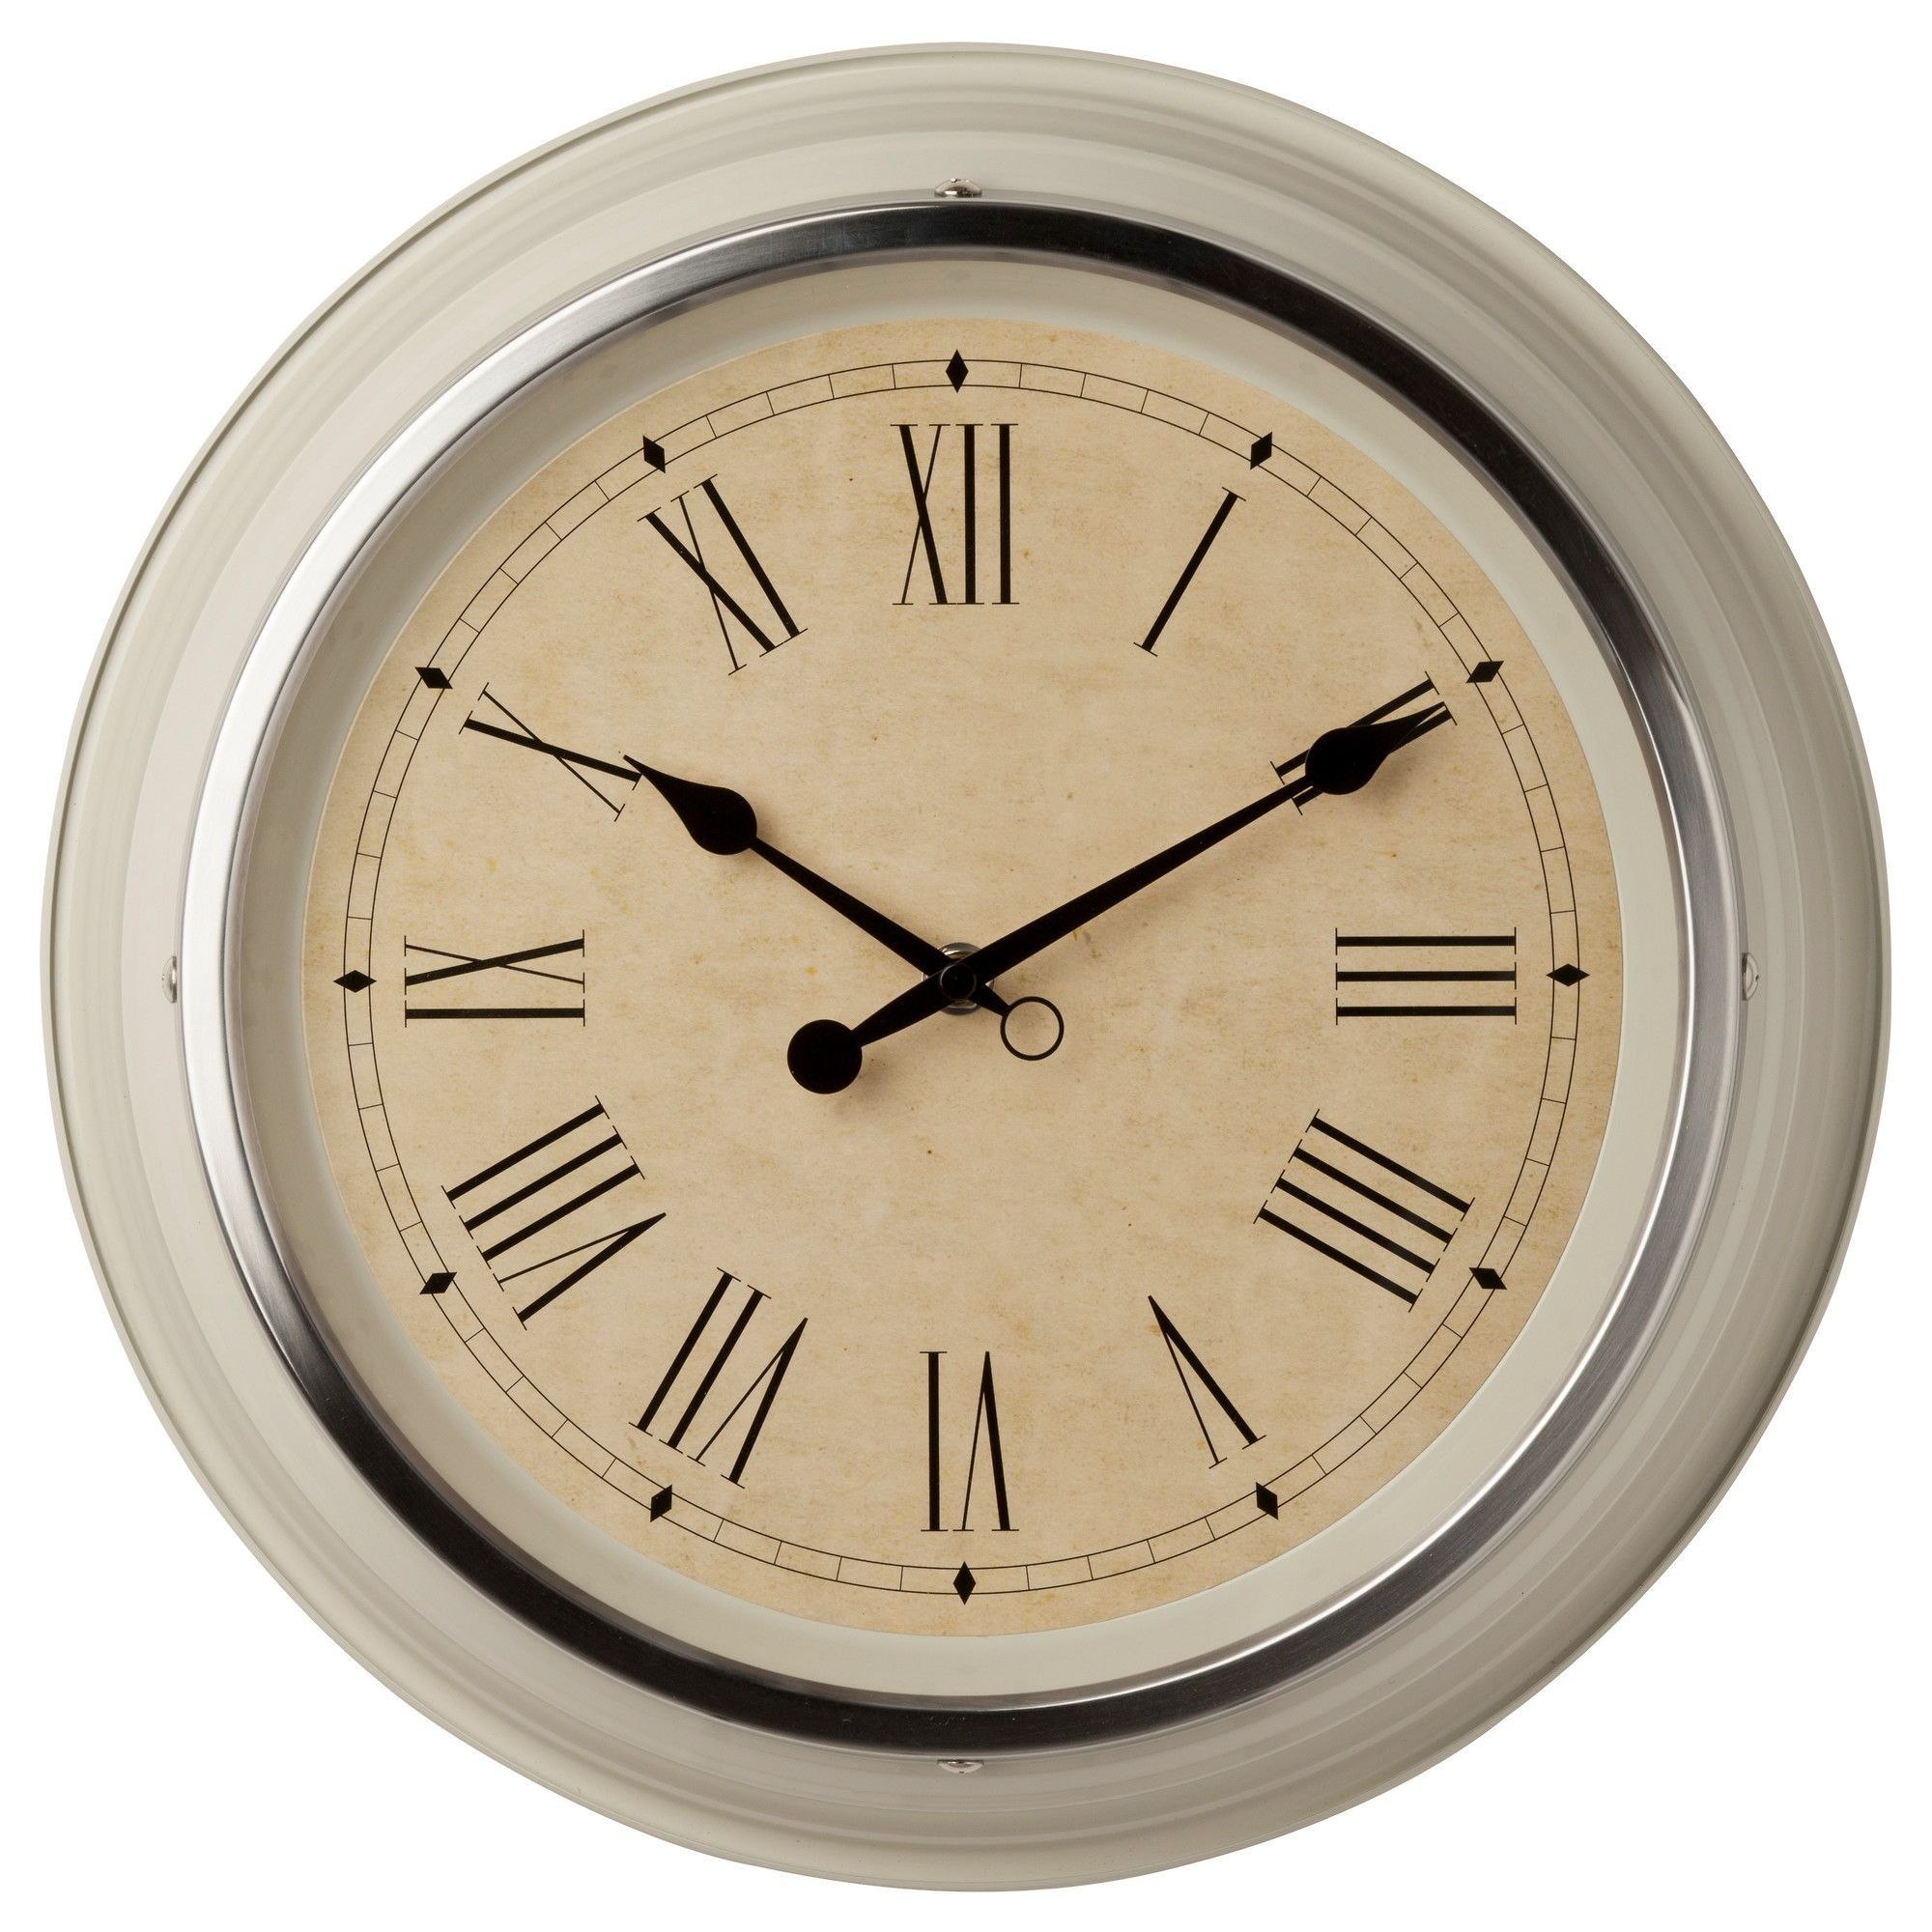 Skovel Wall Clock Ikea Fits Inside The Wall Stickers For The